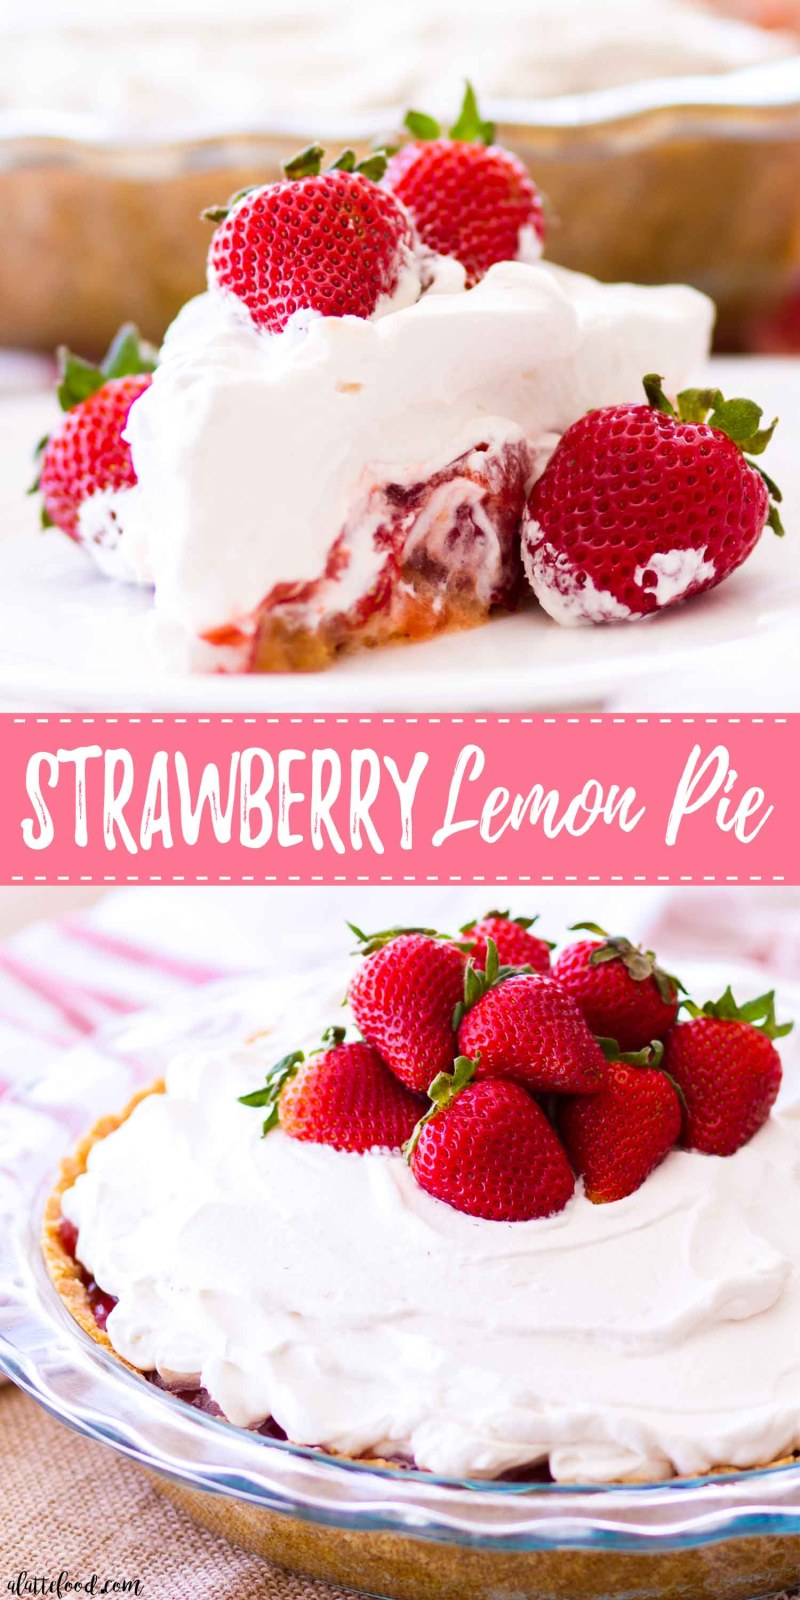 This Strawberry Lemon Pie is made with fresh strawberries, lemon curd, and a sweet homemade graham cracker crust!This strawberry pie recipe is super simple to make, sweet and tangy, and the perfect summer dessert! Plus, it's topped with a homemade whipped cream that's to die for! easy strawberry pie recipe, no bake strawberry pie recipe